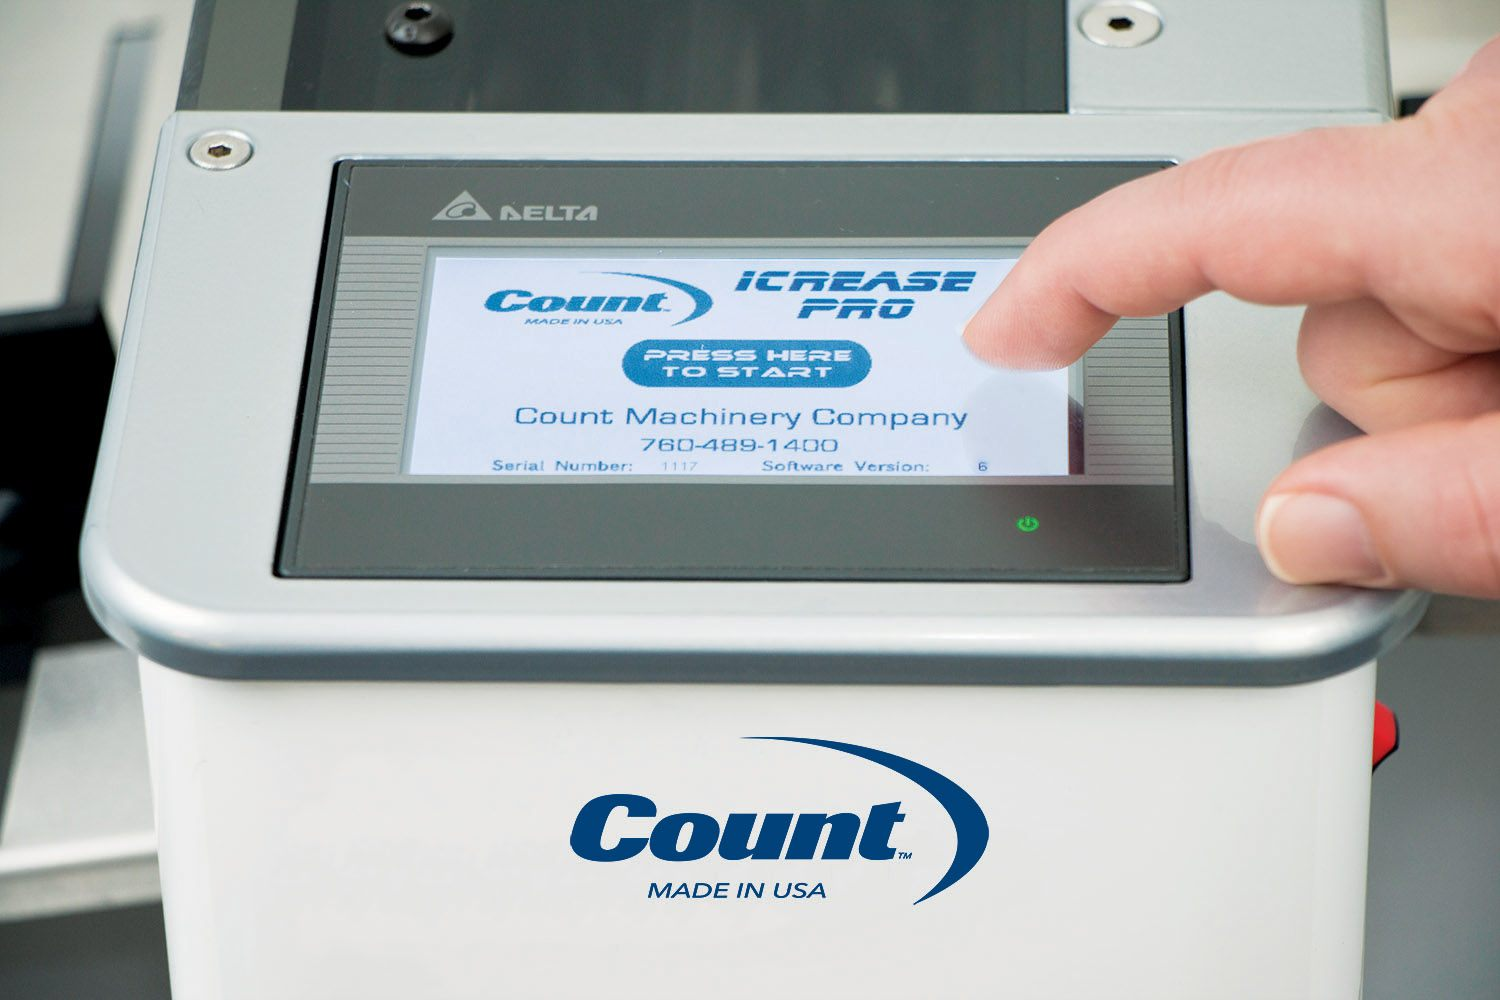 COUNT iCrease Pro Touch Screen